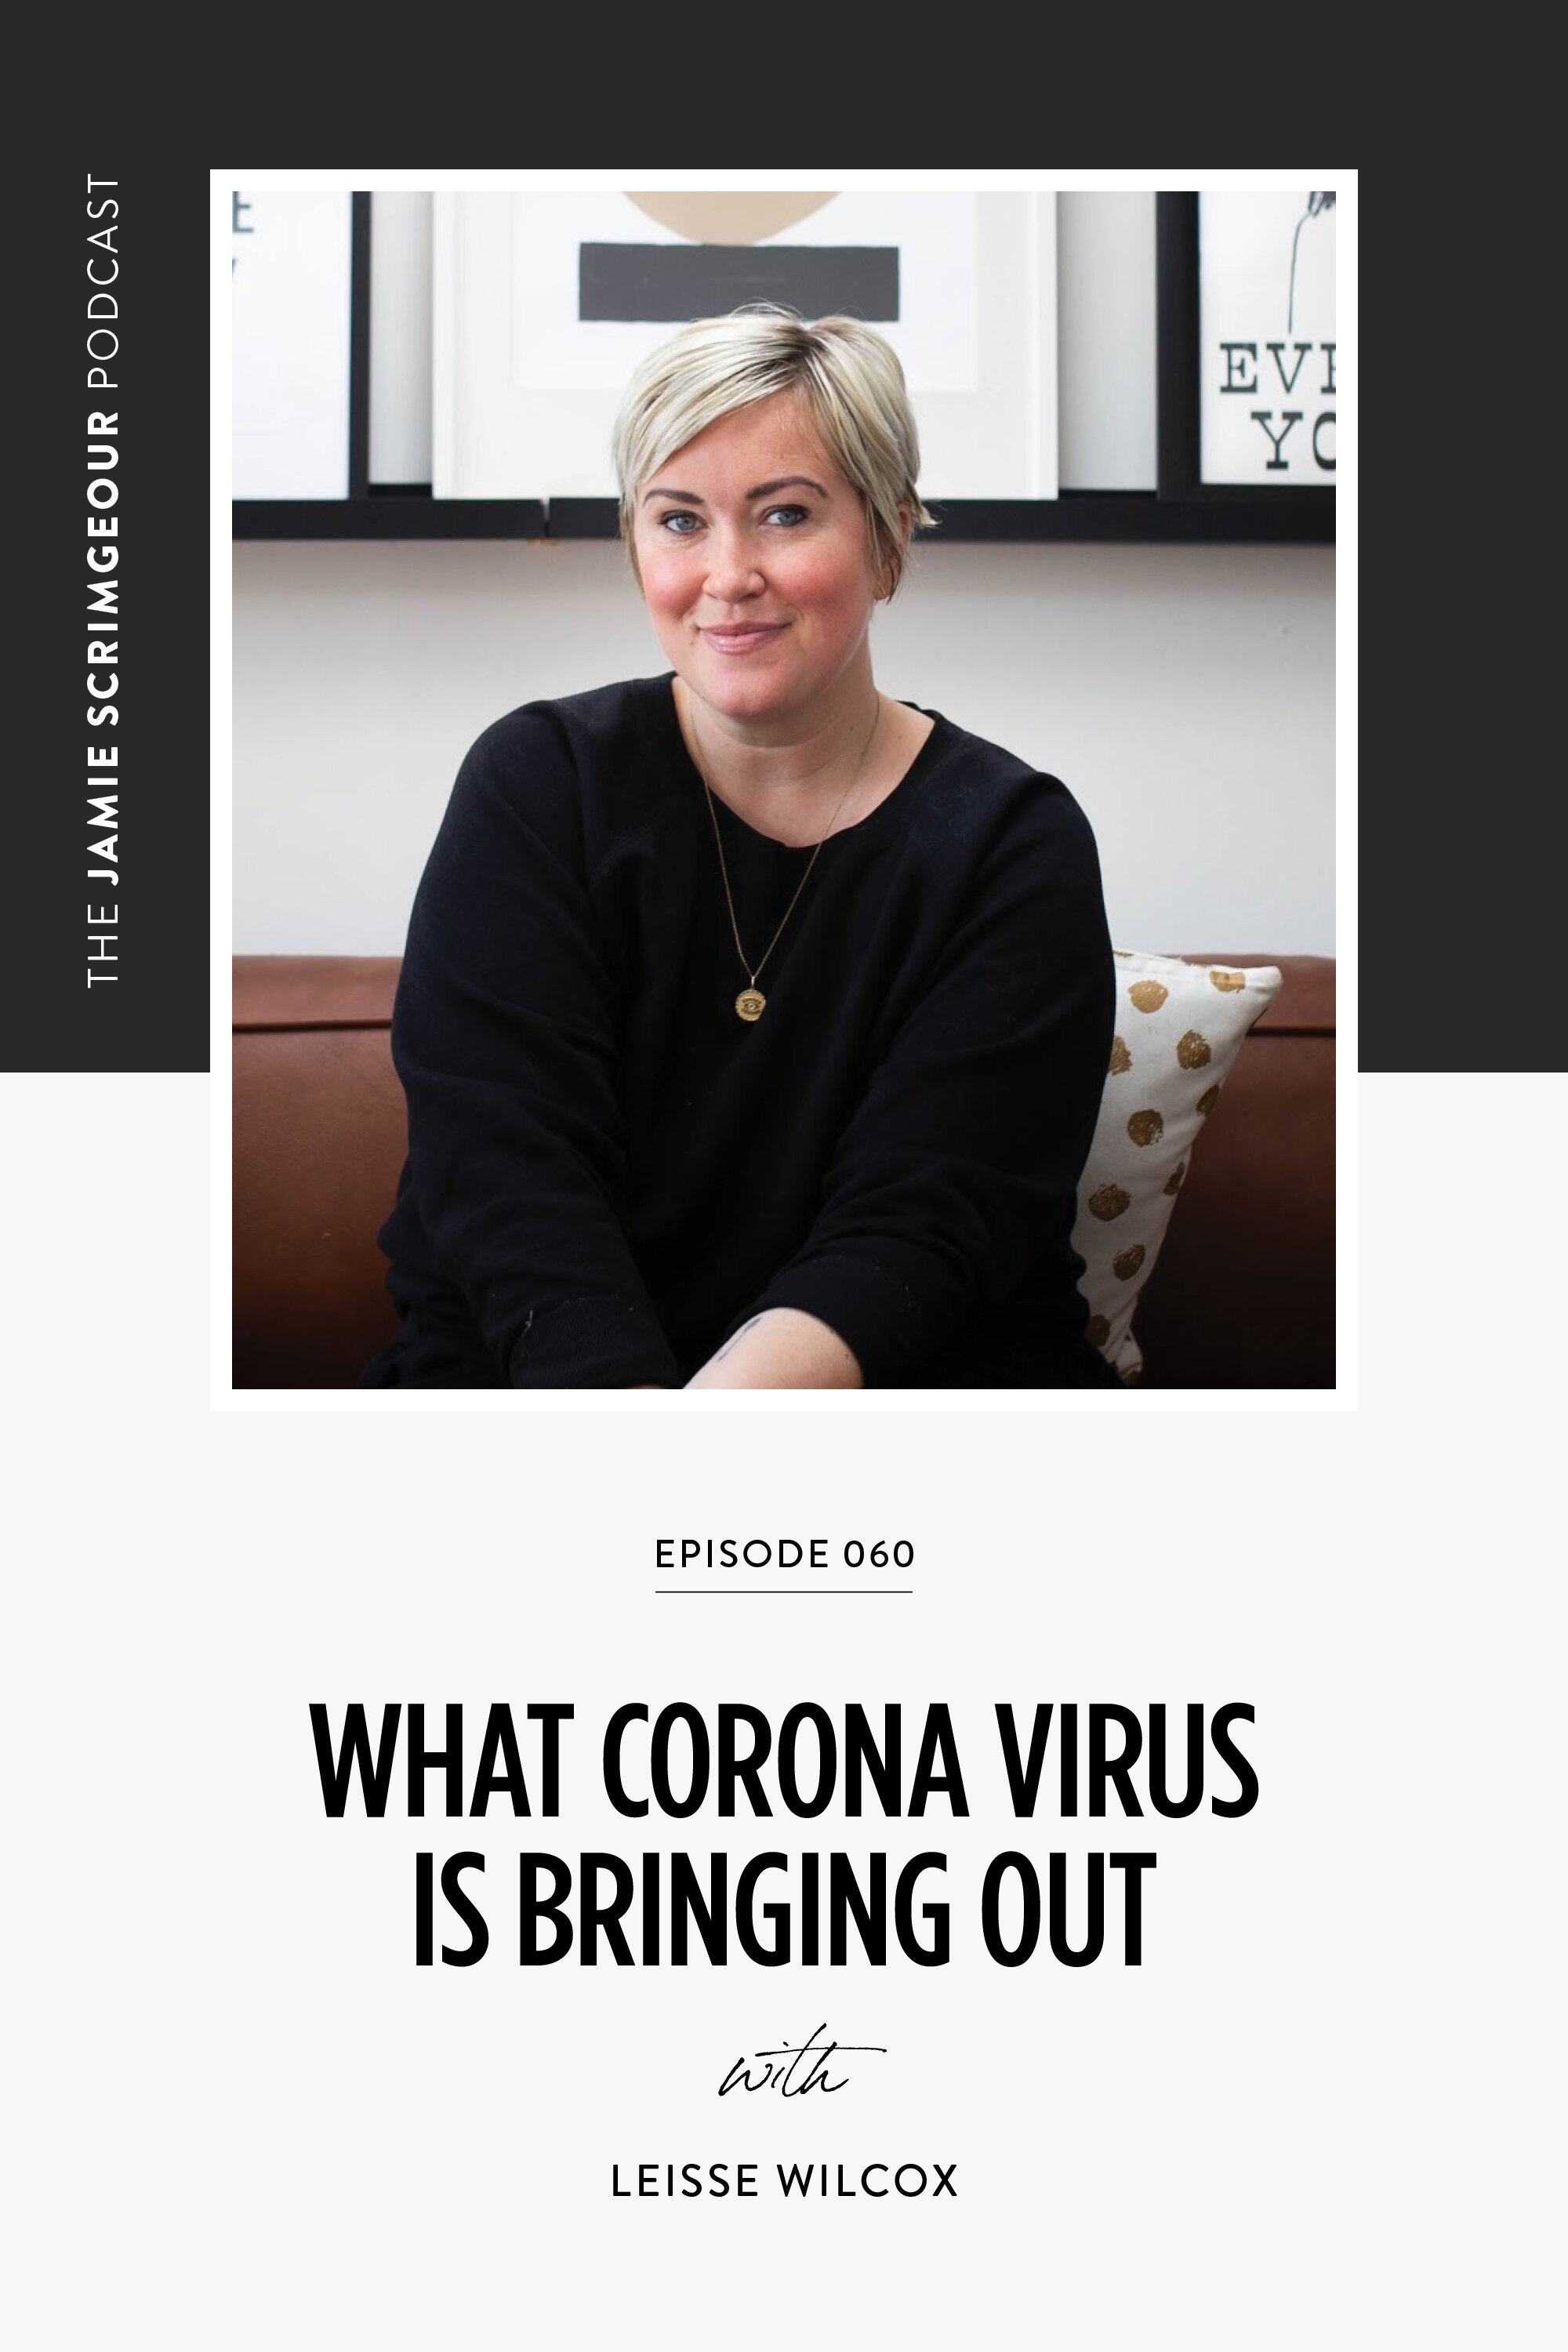 The Jamie Scrimgeour Podcast Episode 060 - What Corona Virus Is Bringing Out with Leisse Wilcox